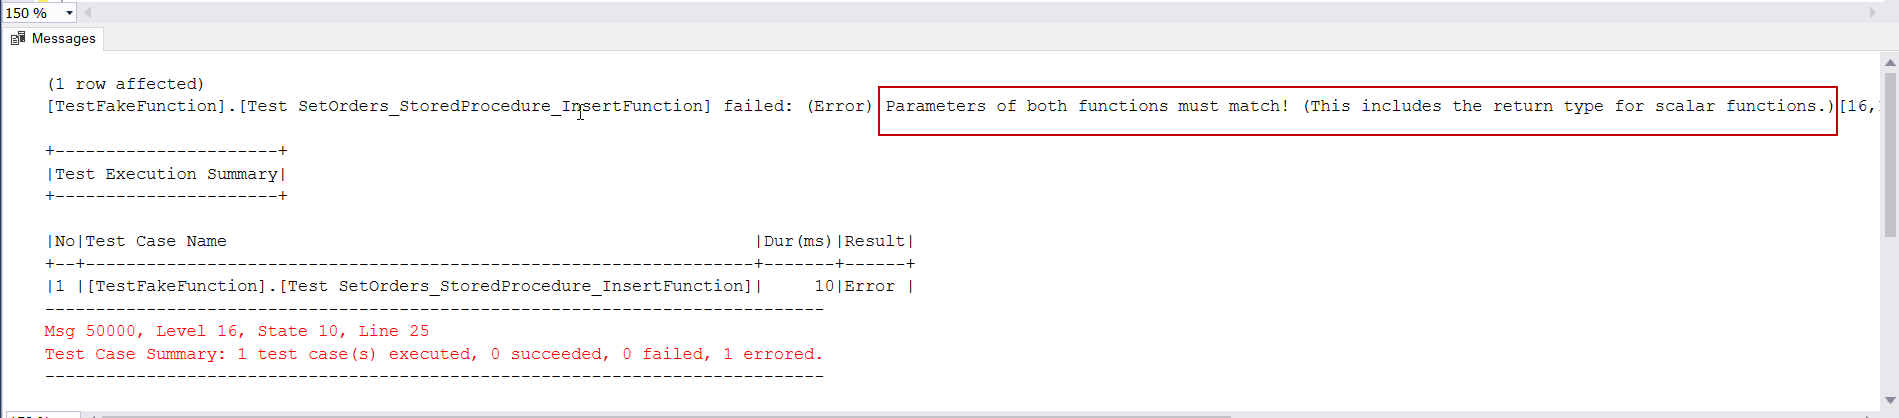 FakeFunction parameters of both functions must match error image.